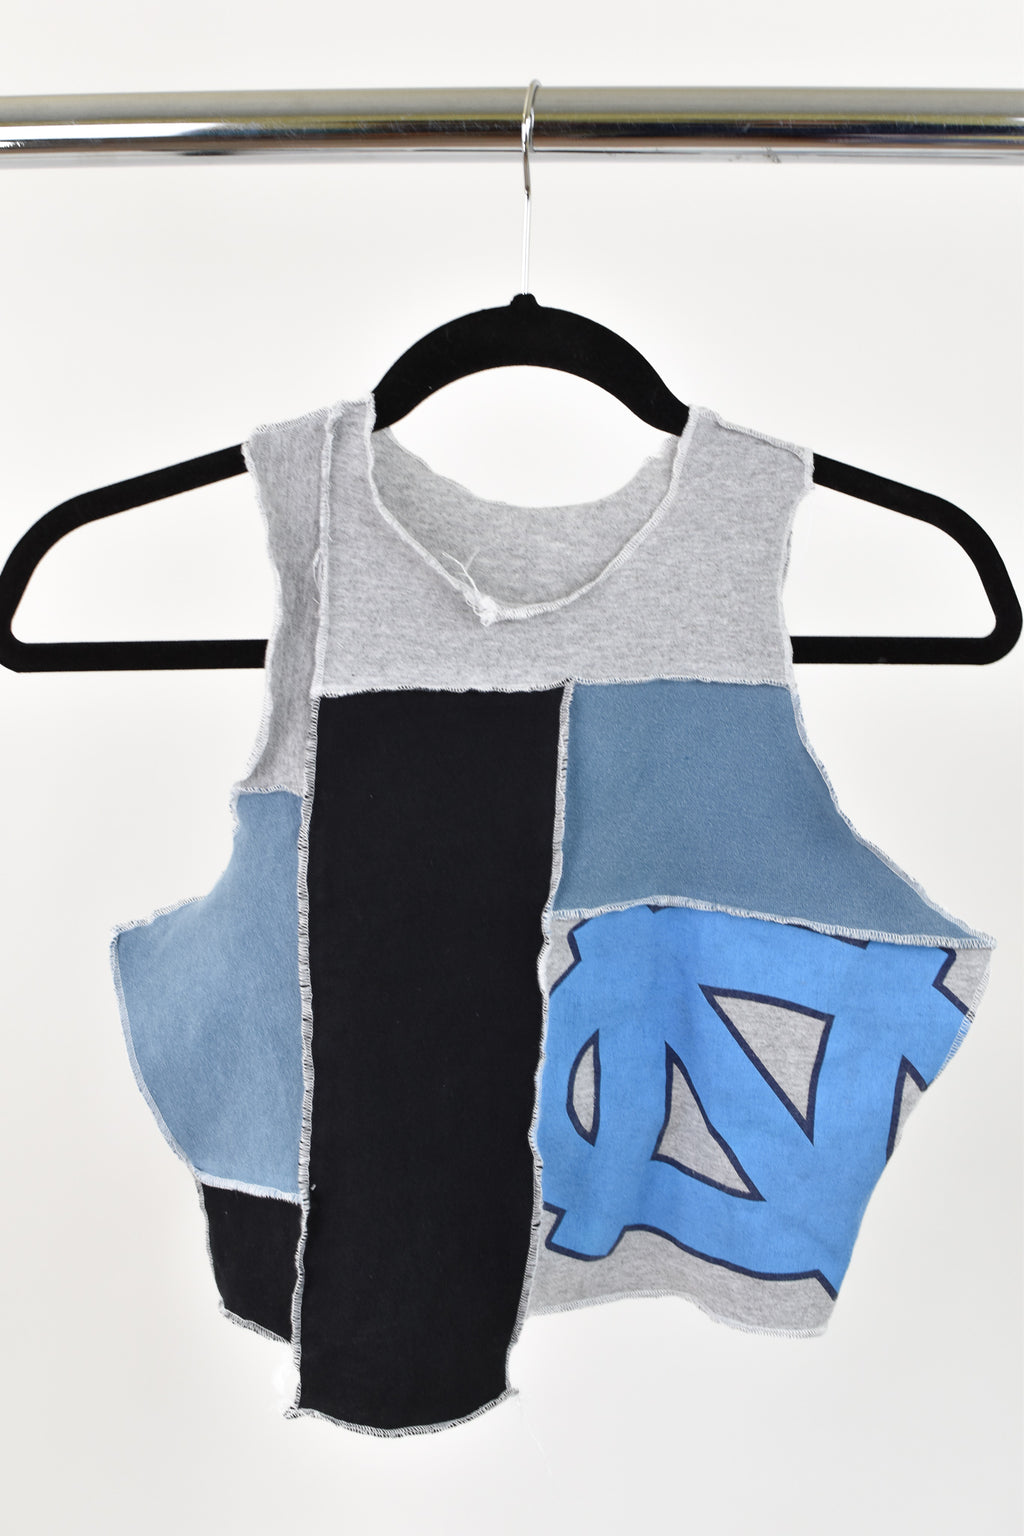 Upcycled University of North Carolina Scrappy Top